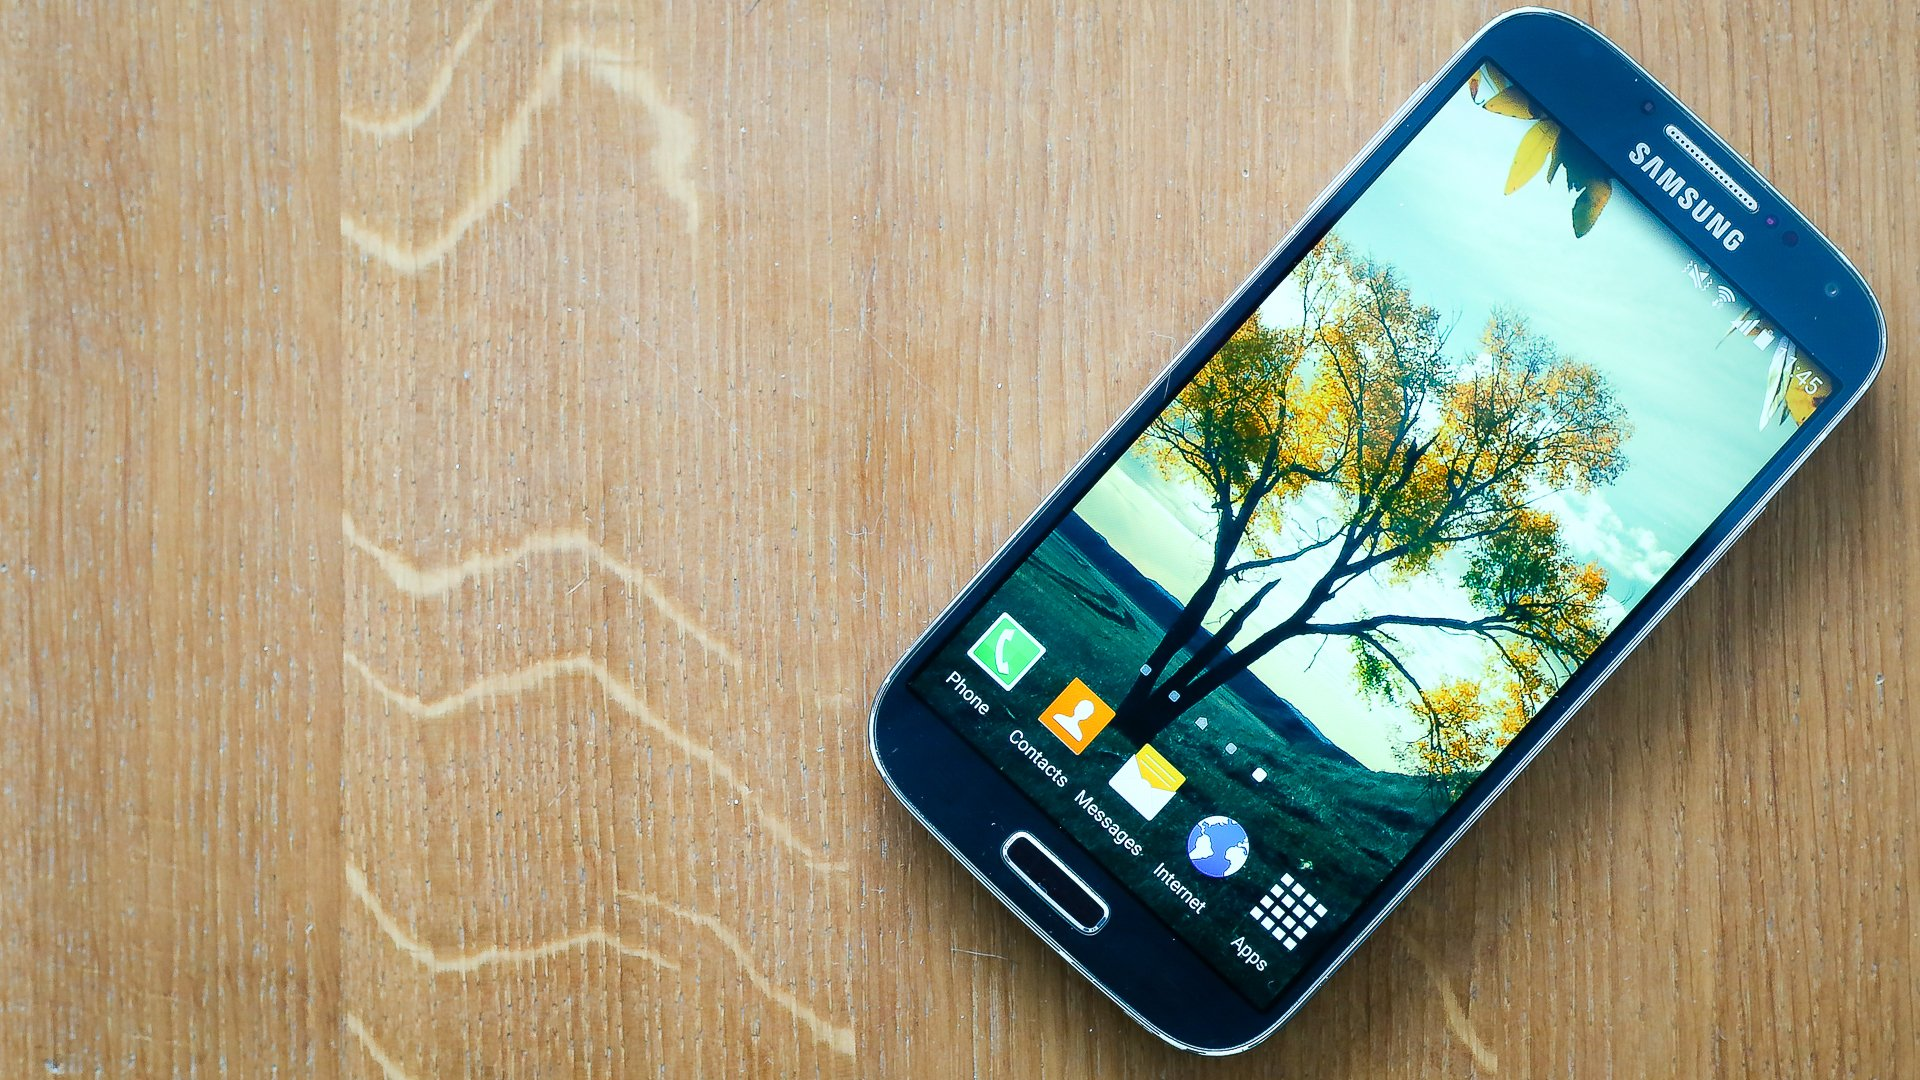 hight resolution of galaxy s4 owners here are 5 reasons you shouldn t upgrade to a new phone androidpit